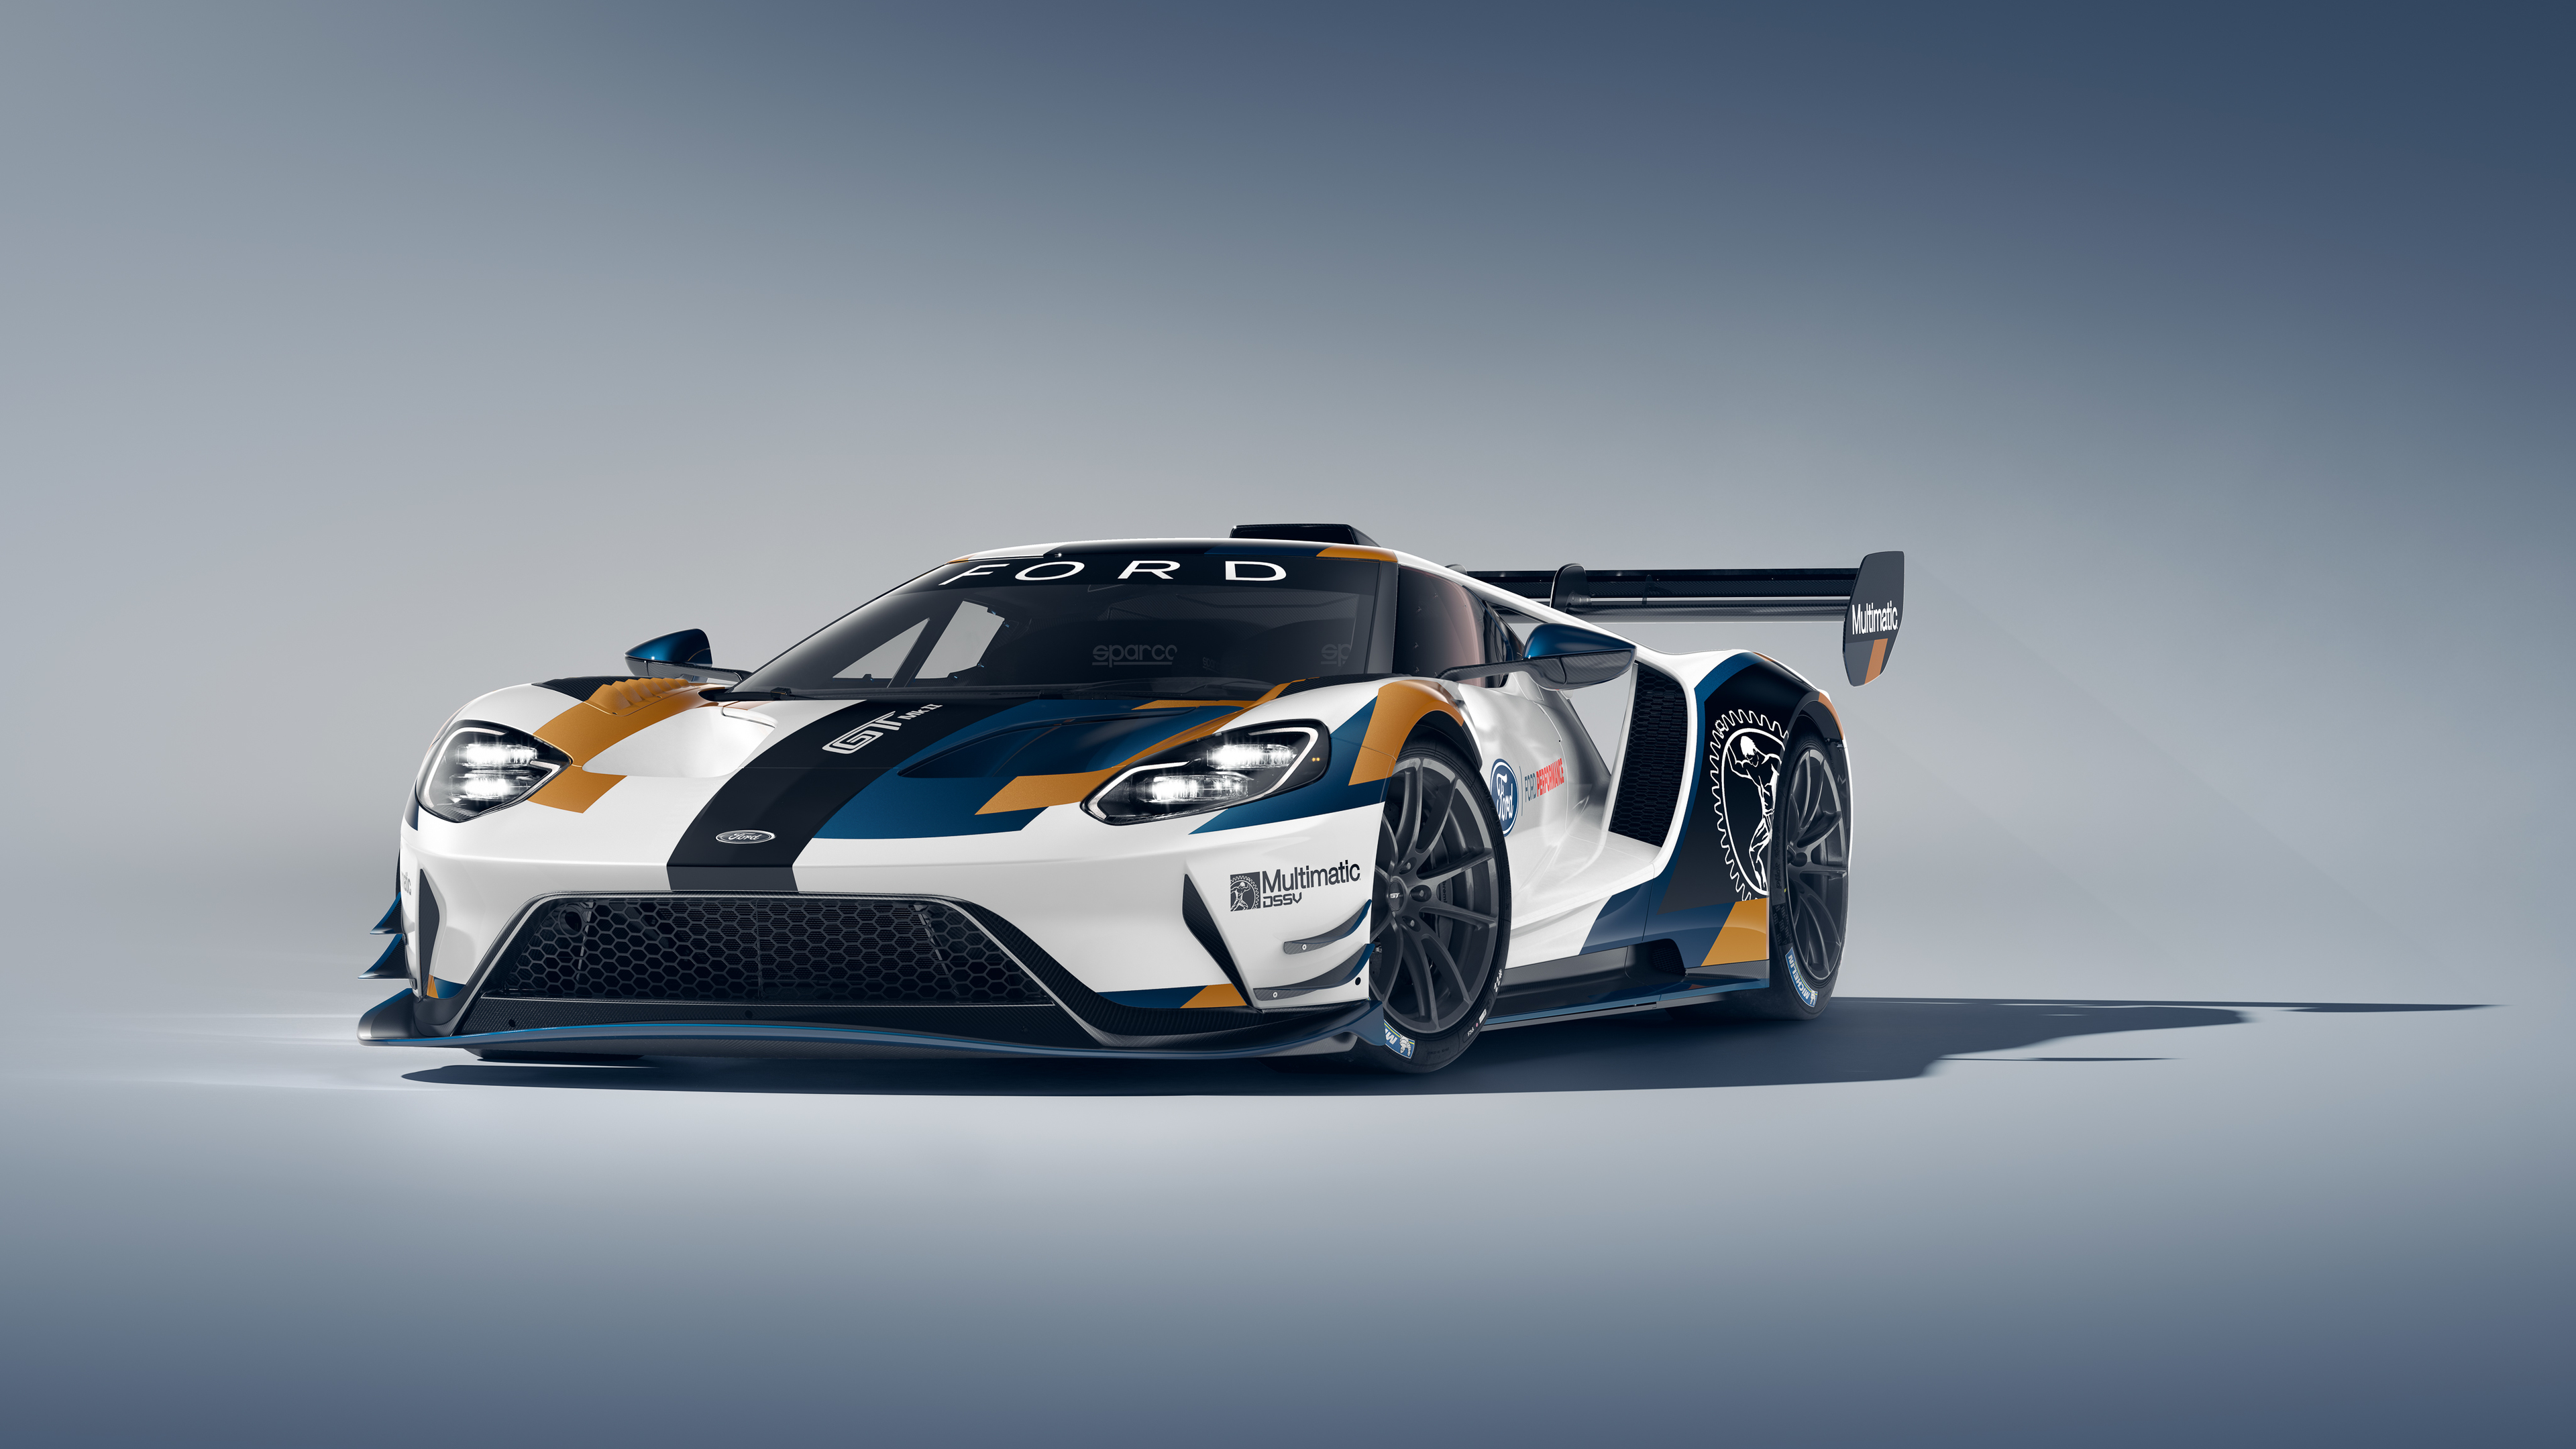 2019 ford gt mk2 new 1569188299 - 2019 Ford Gt Mk2 New - hd-wallpapers, ford wallpapers, ford gt wallpapers, cars wallpapers, 4k-wallpapers